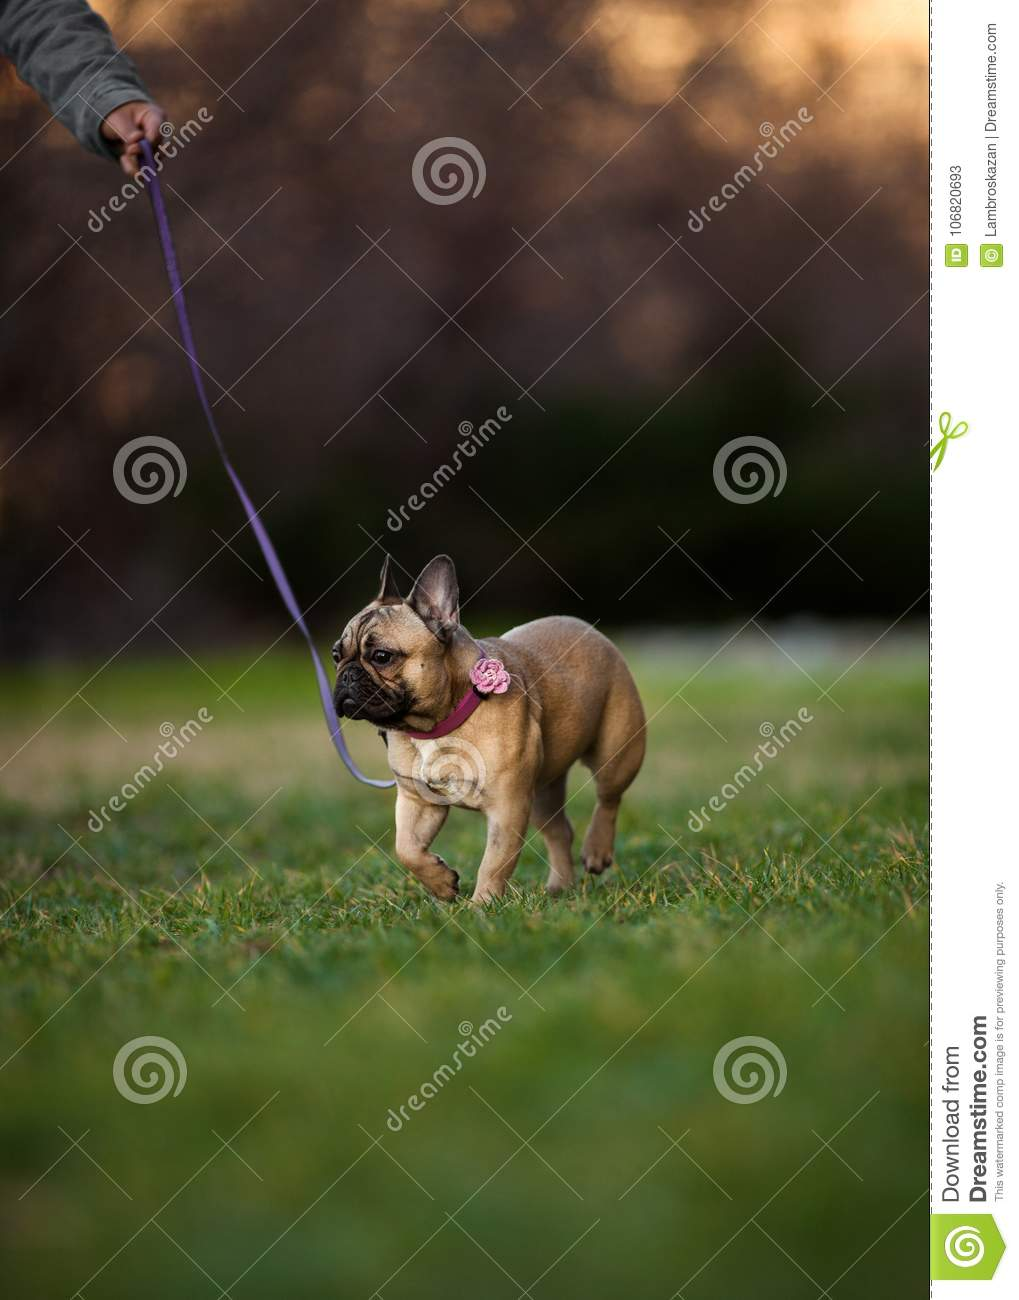 Adoreable Nine Months Old Purebred French Bulldog at Park